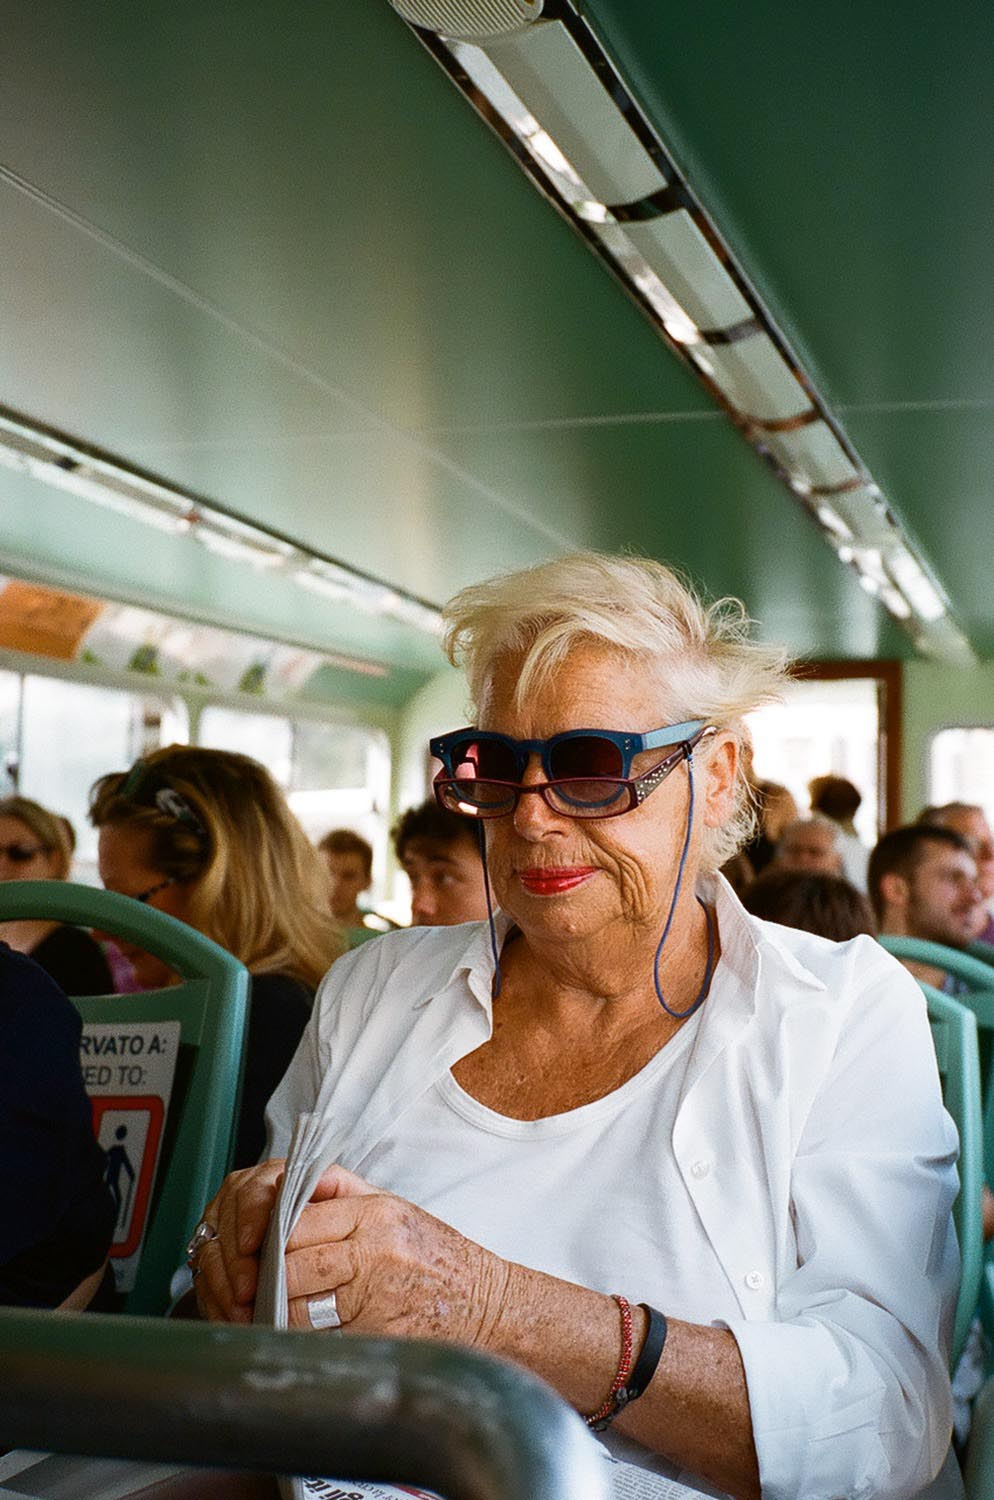 People woman senior glasses sunglasses bus